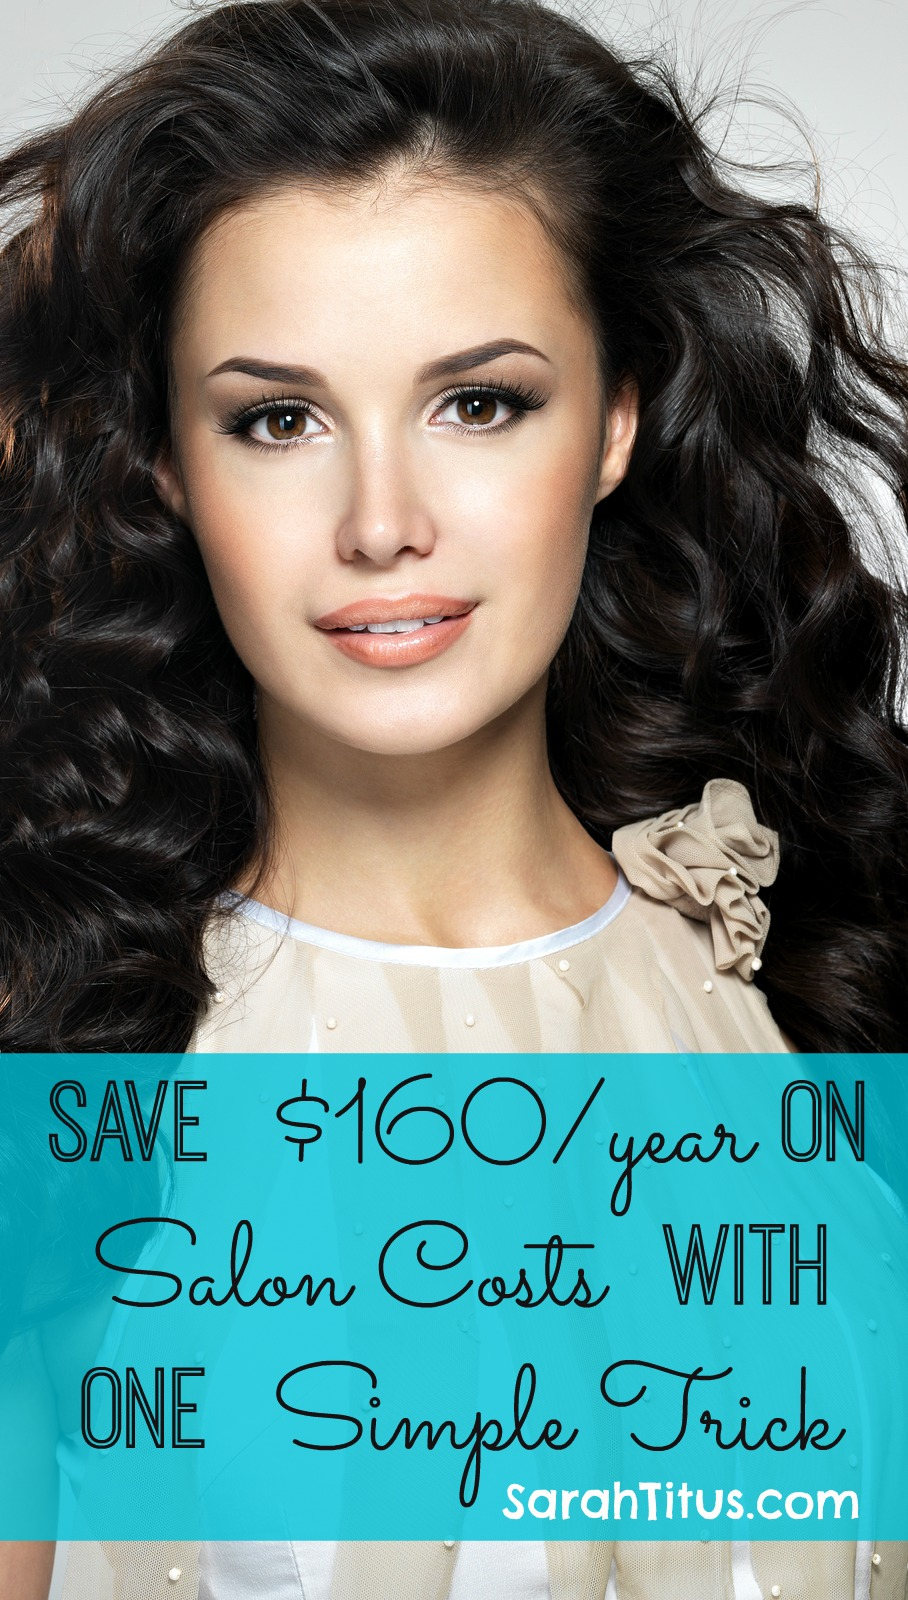 Save $160/year on Salon Costs with One Simple Trick